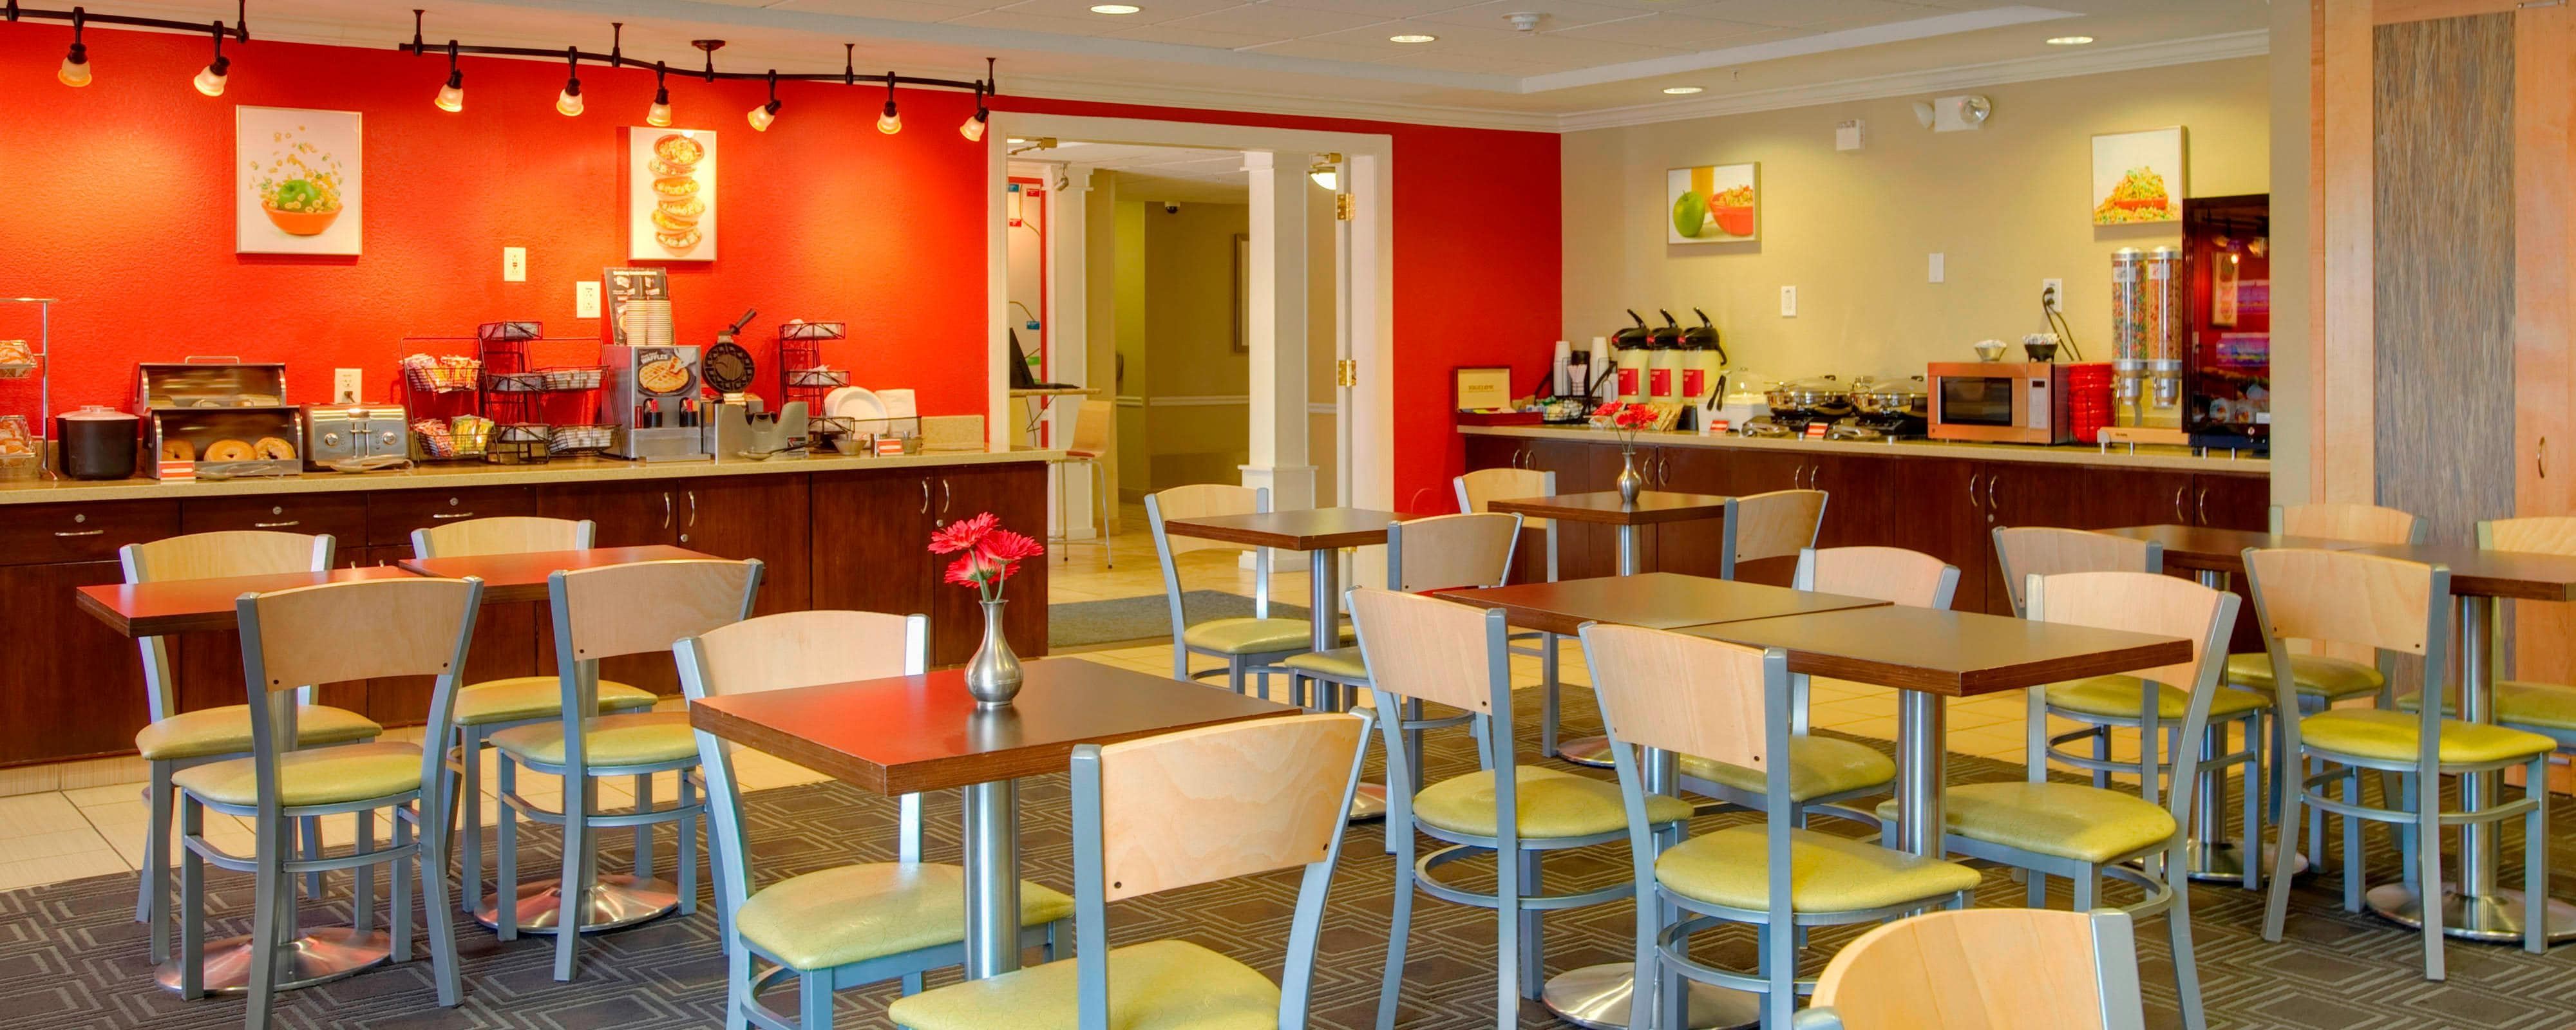 Hotels with Continental Breakfast | TownePlace Suites Las Cruces Dining